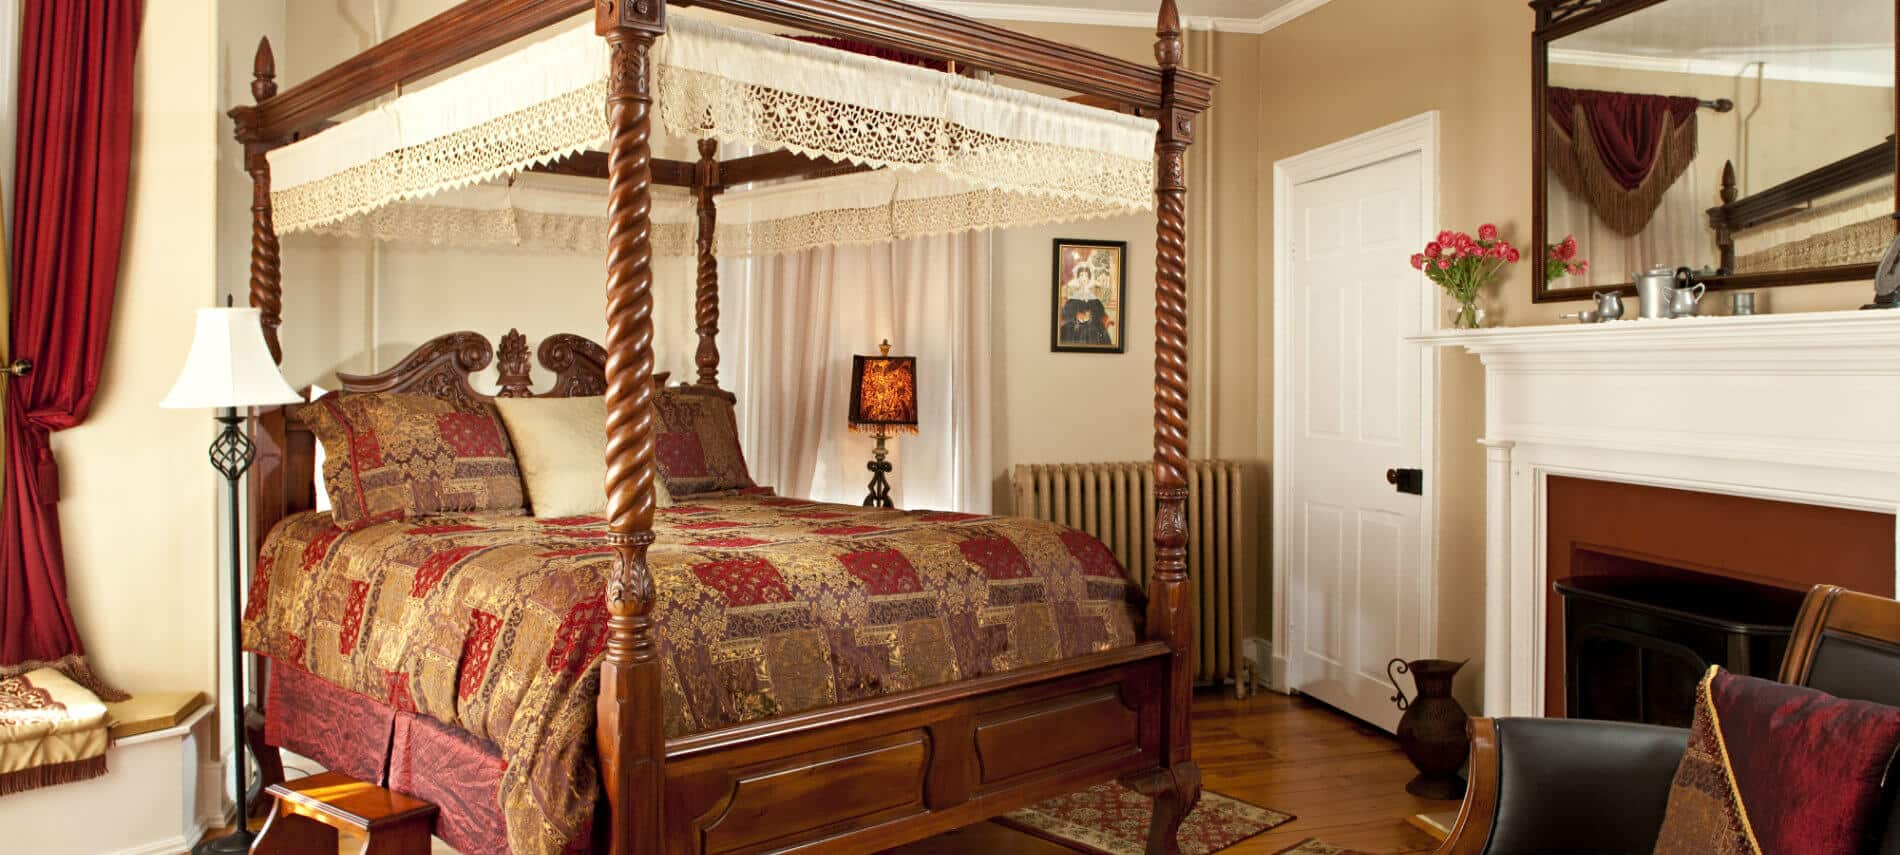 Beautifully elegant guest room with four poster bed; red, brown and gold bedding; and fireplace